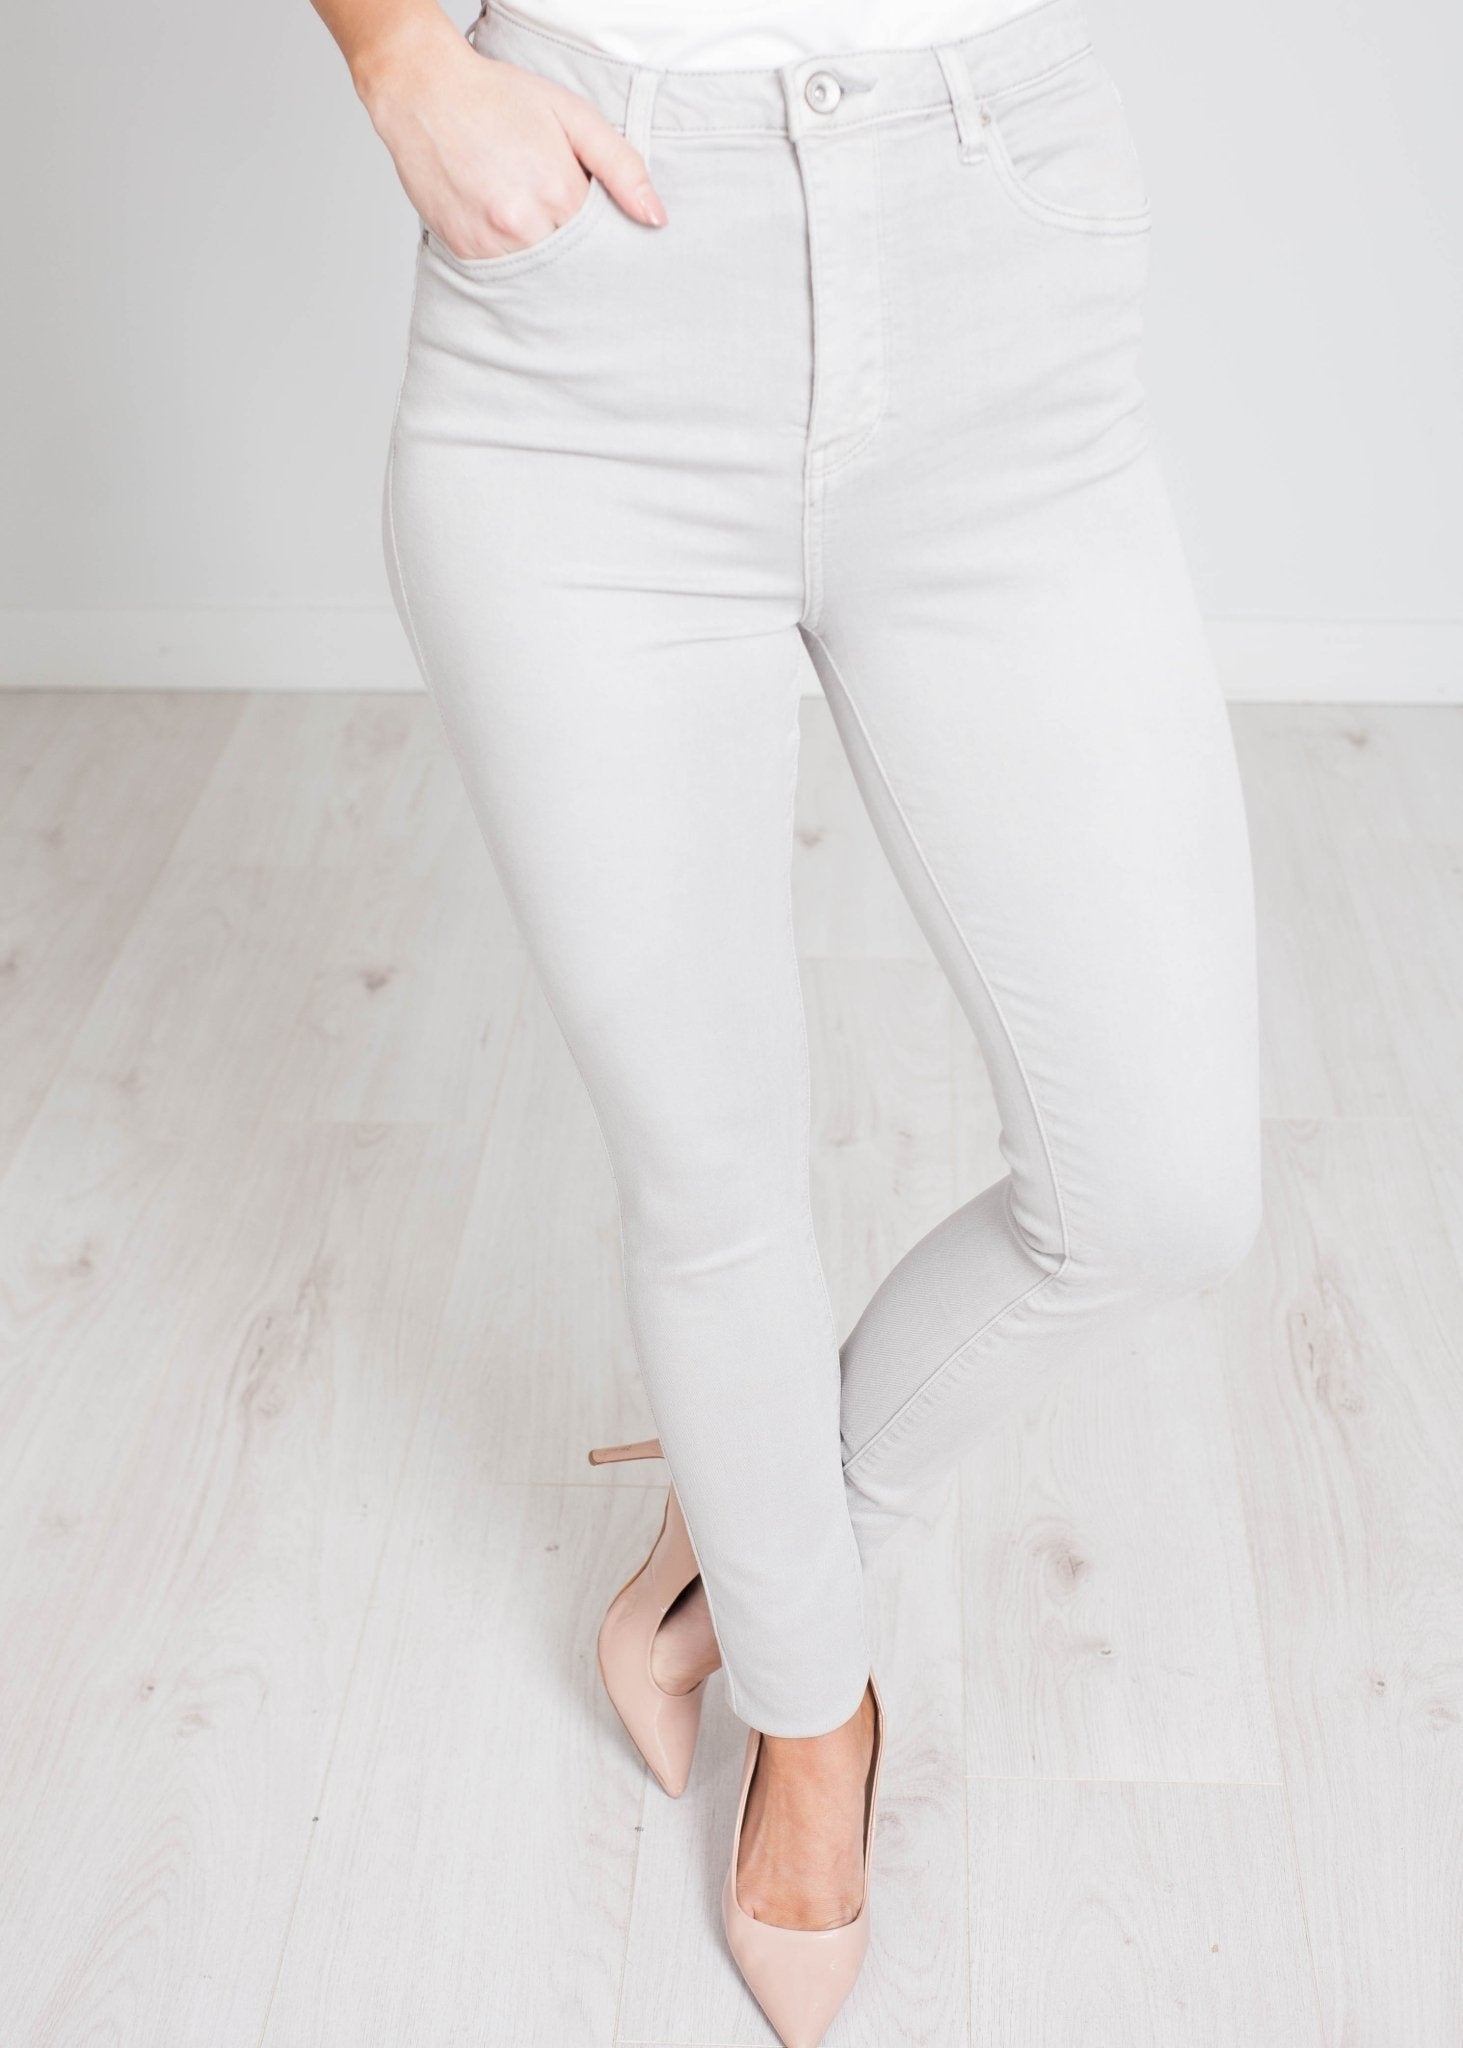 Eden High Waist Skinny Jean In Grey - The Walk in Wardrobe